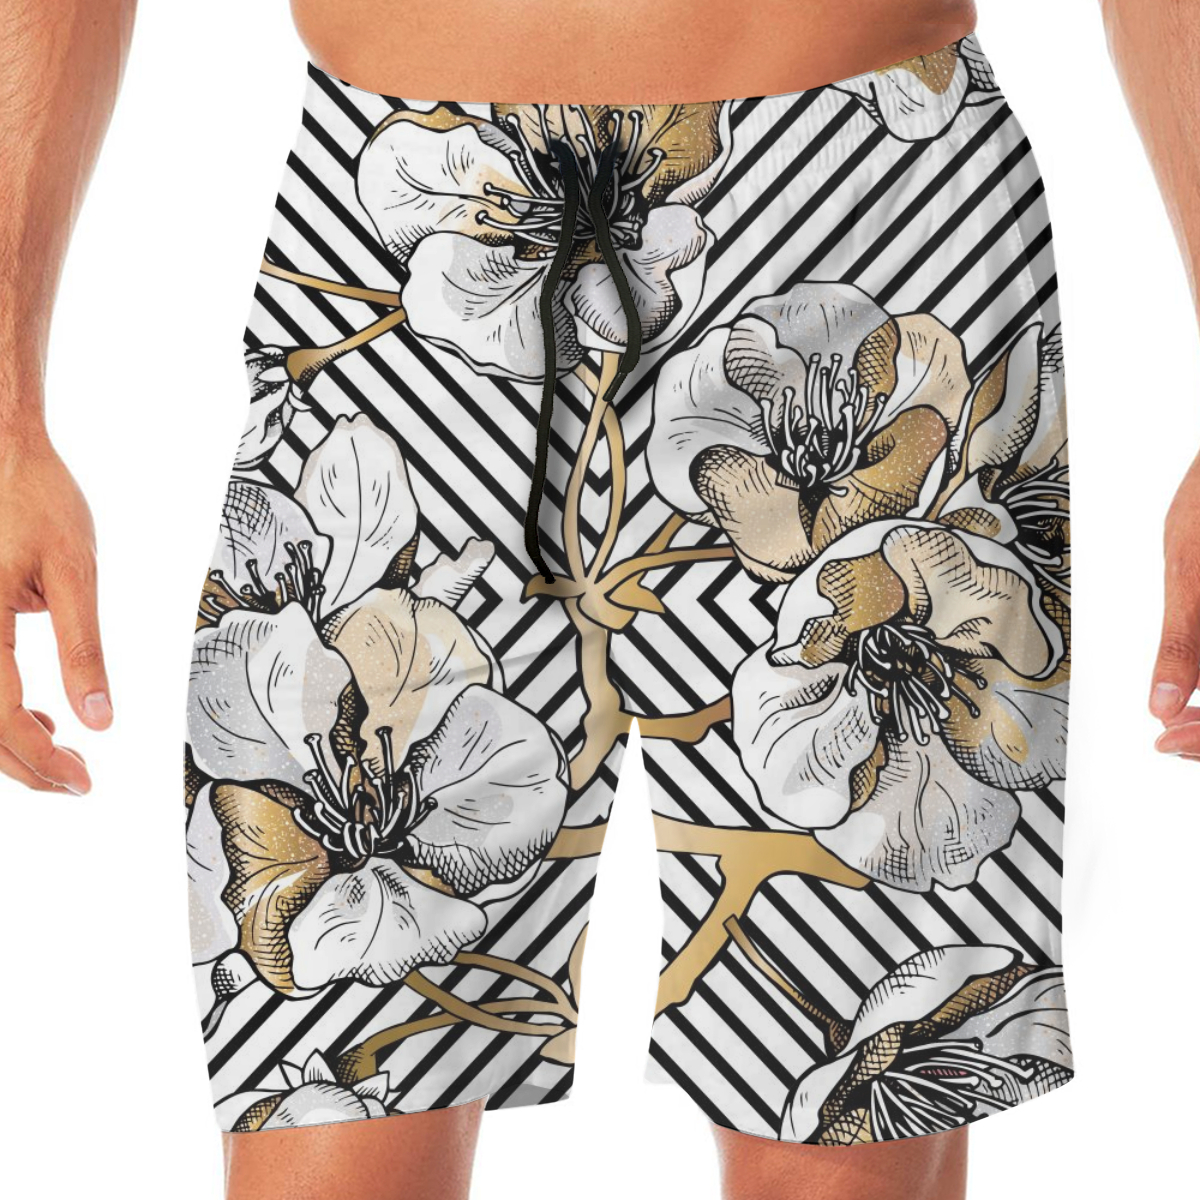 Summer Gold Flowers Cherry On A Black Geometric Background Men Novelty Gay Funny Lounge Pants Beachwear